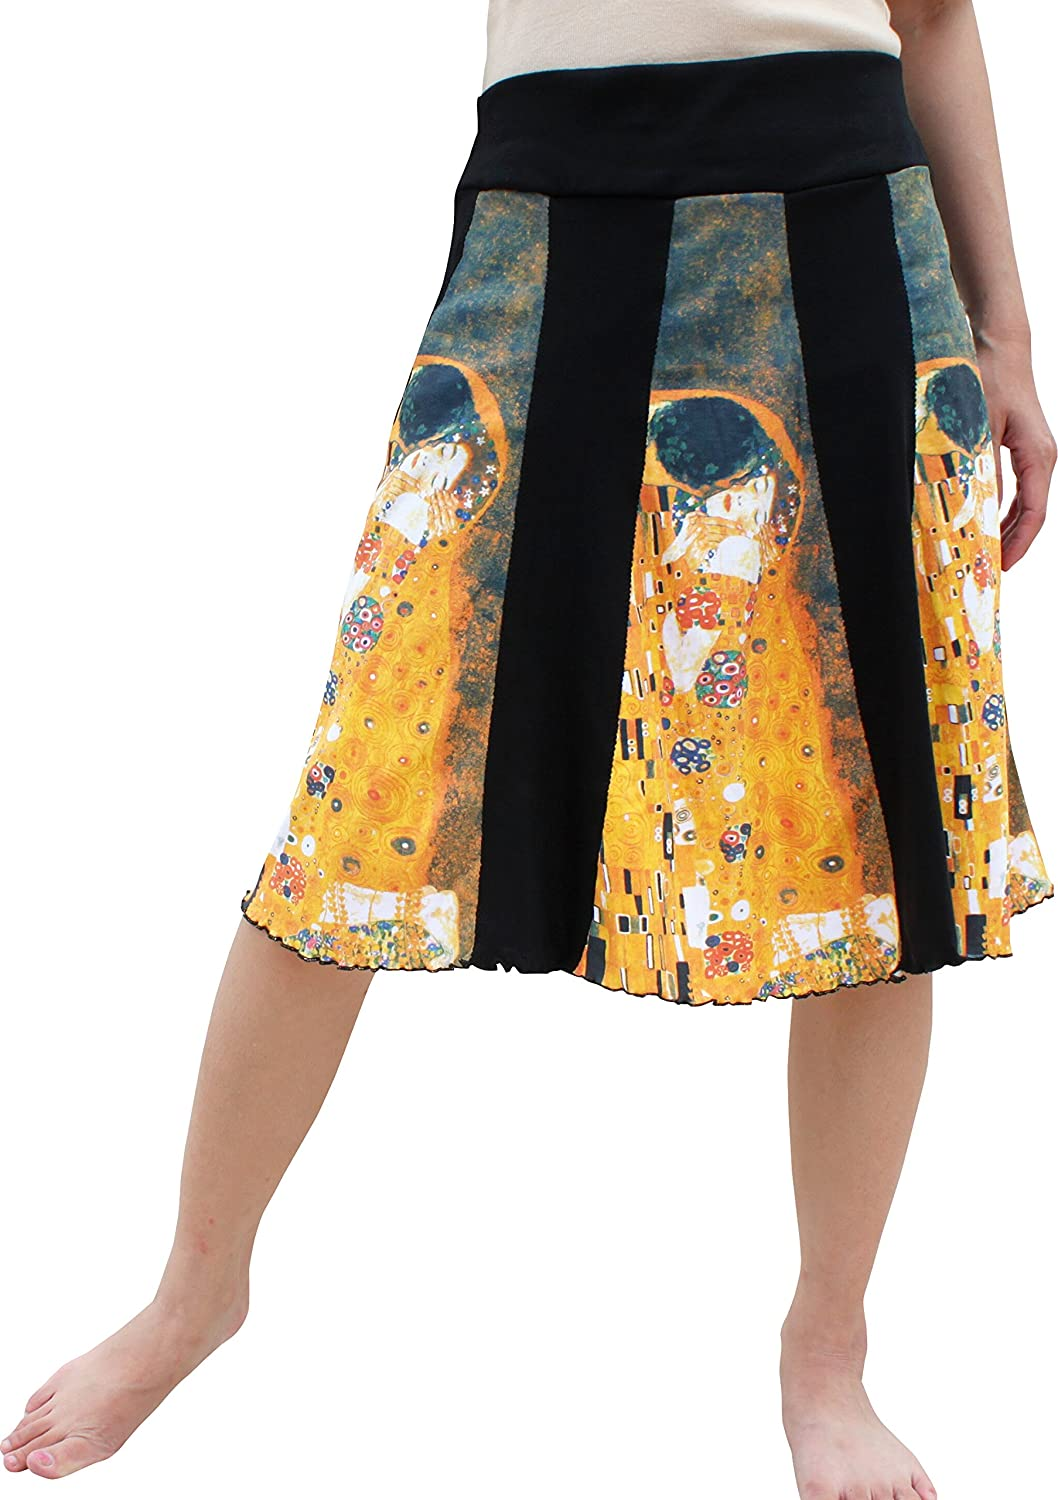 RaanPahMuang Gustav Klimt The Kiss Knee Length Panel Skirt